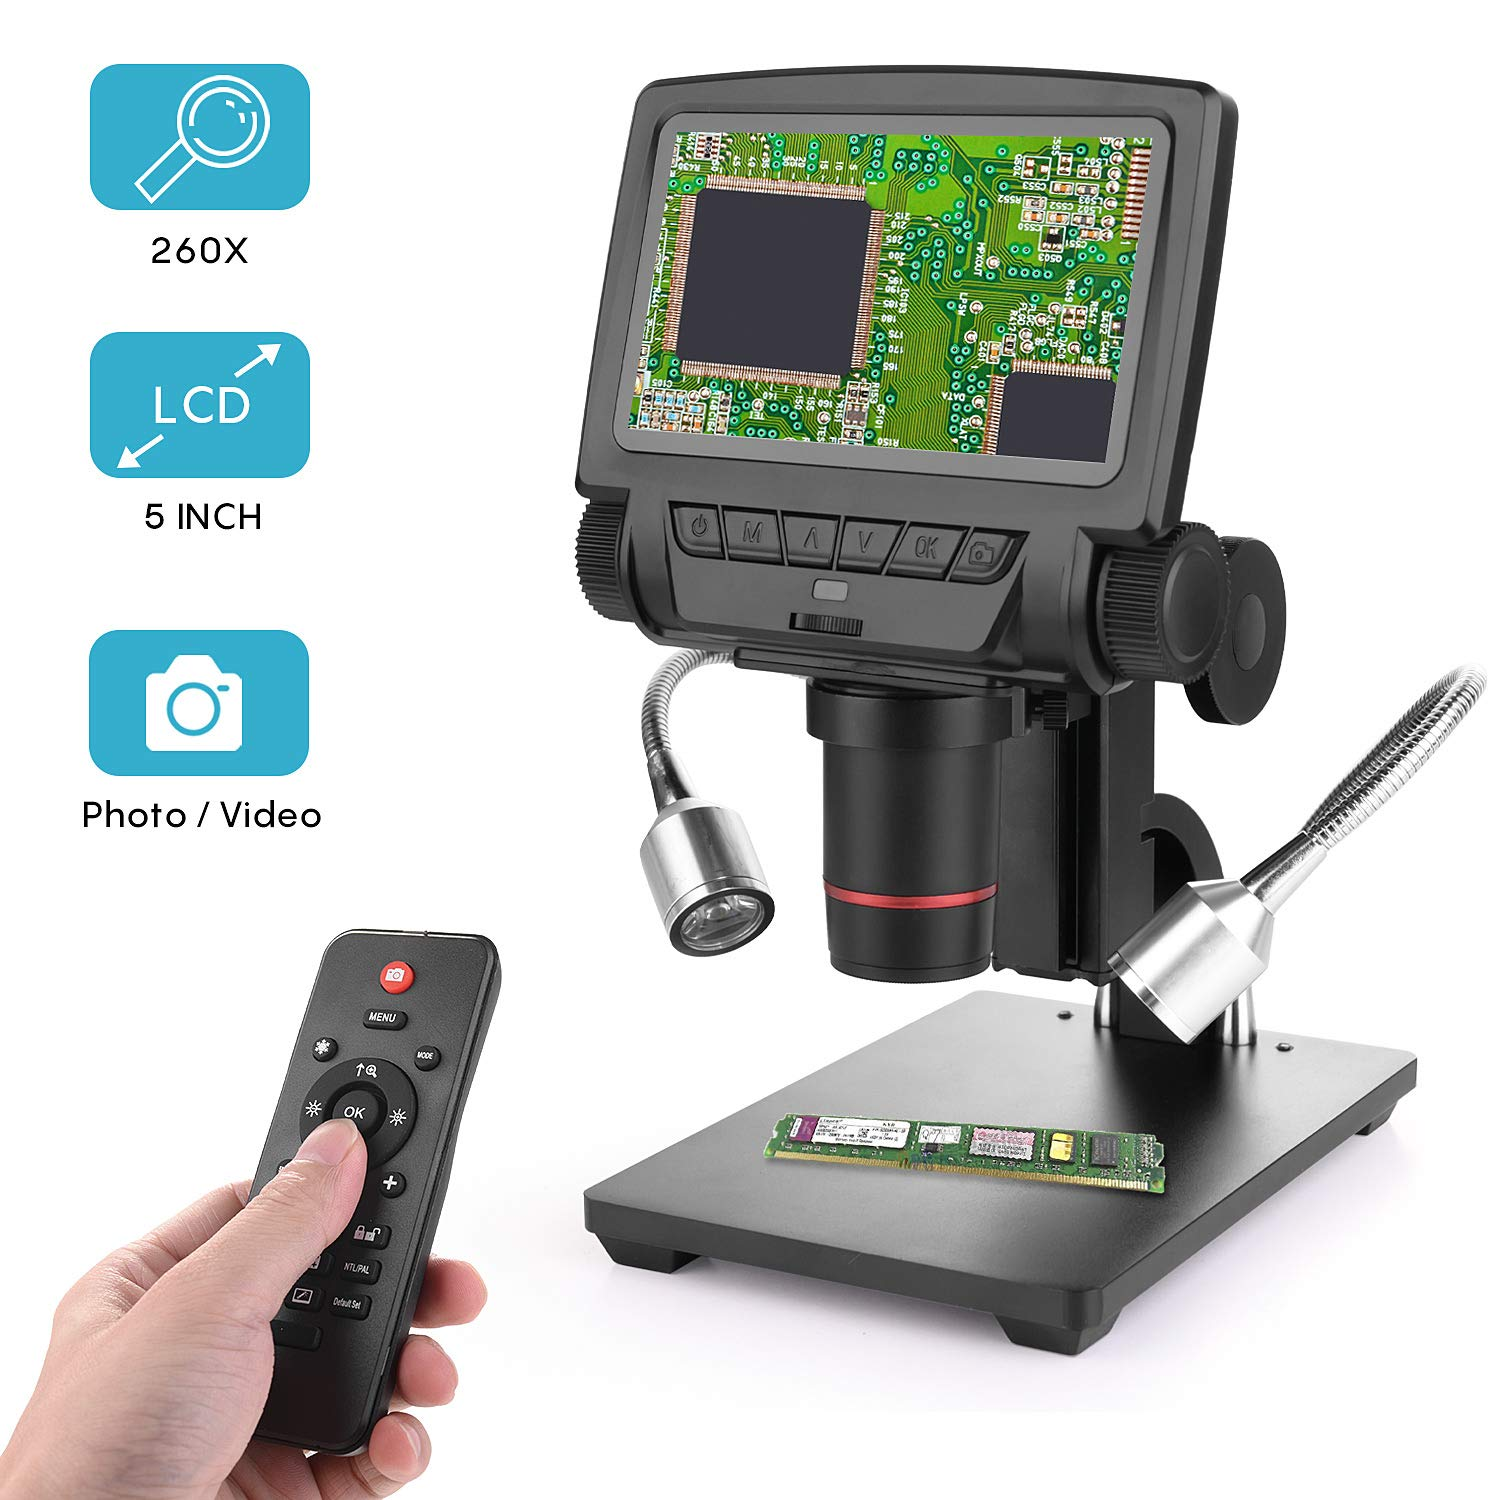 LCD Digital Microscope 5 in HD Screen High Magnification Camera Video Recorder, 8 LED 2 Fill Lights, with Remote Control, Compatible with Windows XP/7/8/10 by Amoper